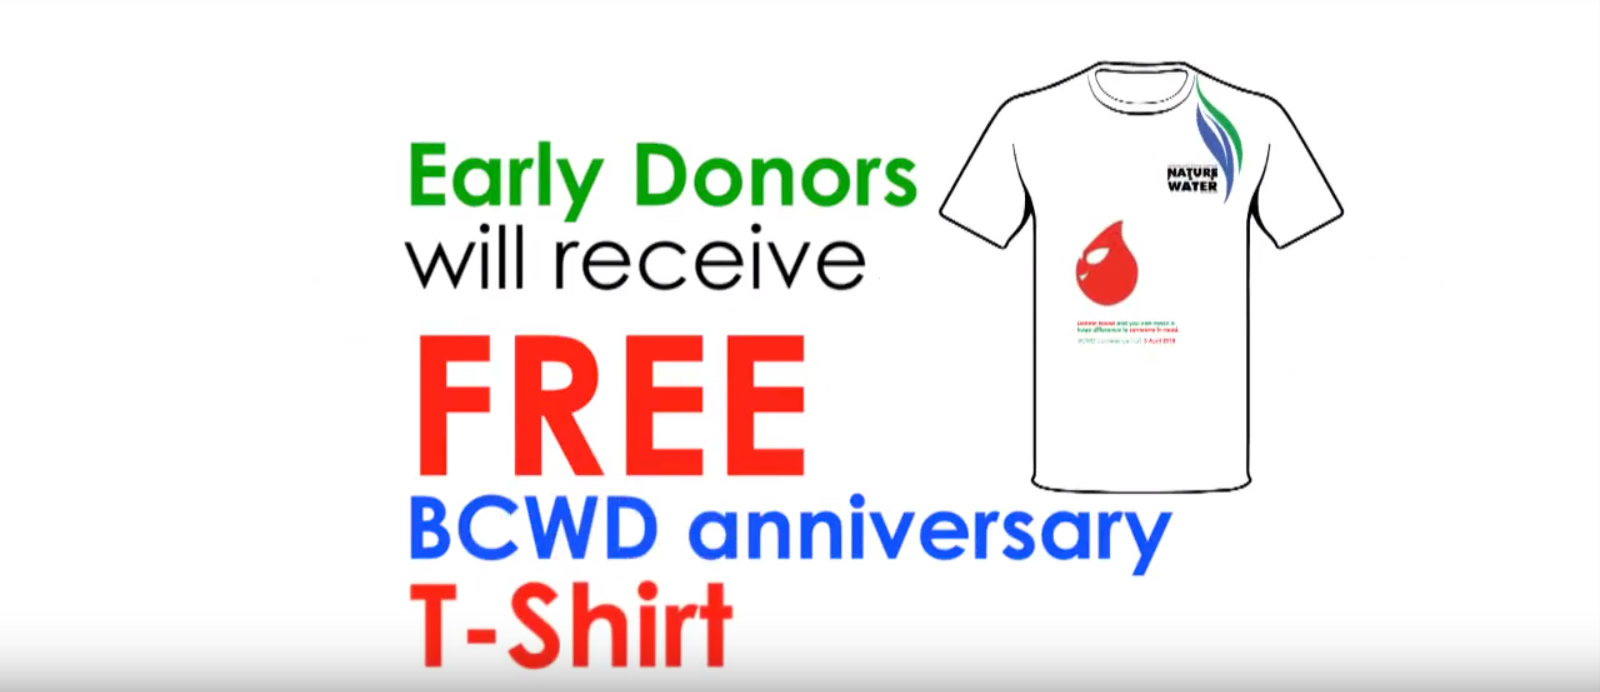 Save lives, donate blood! BCWD Bloodletting 2018